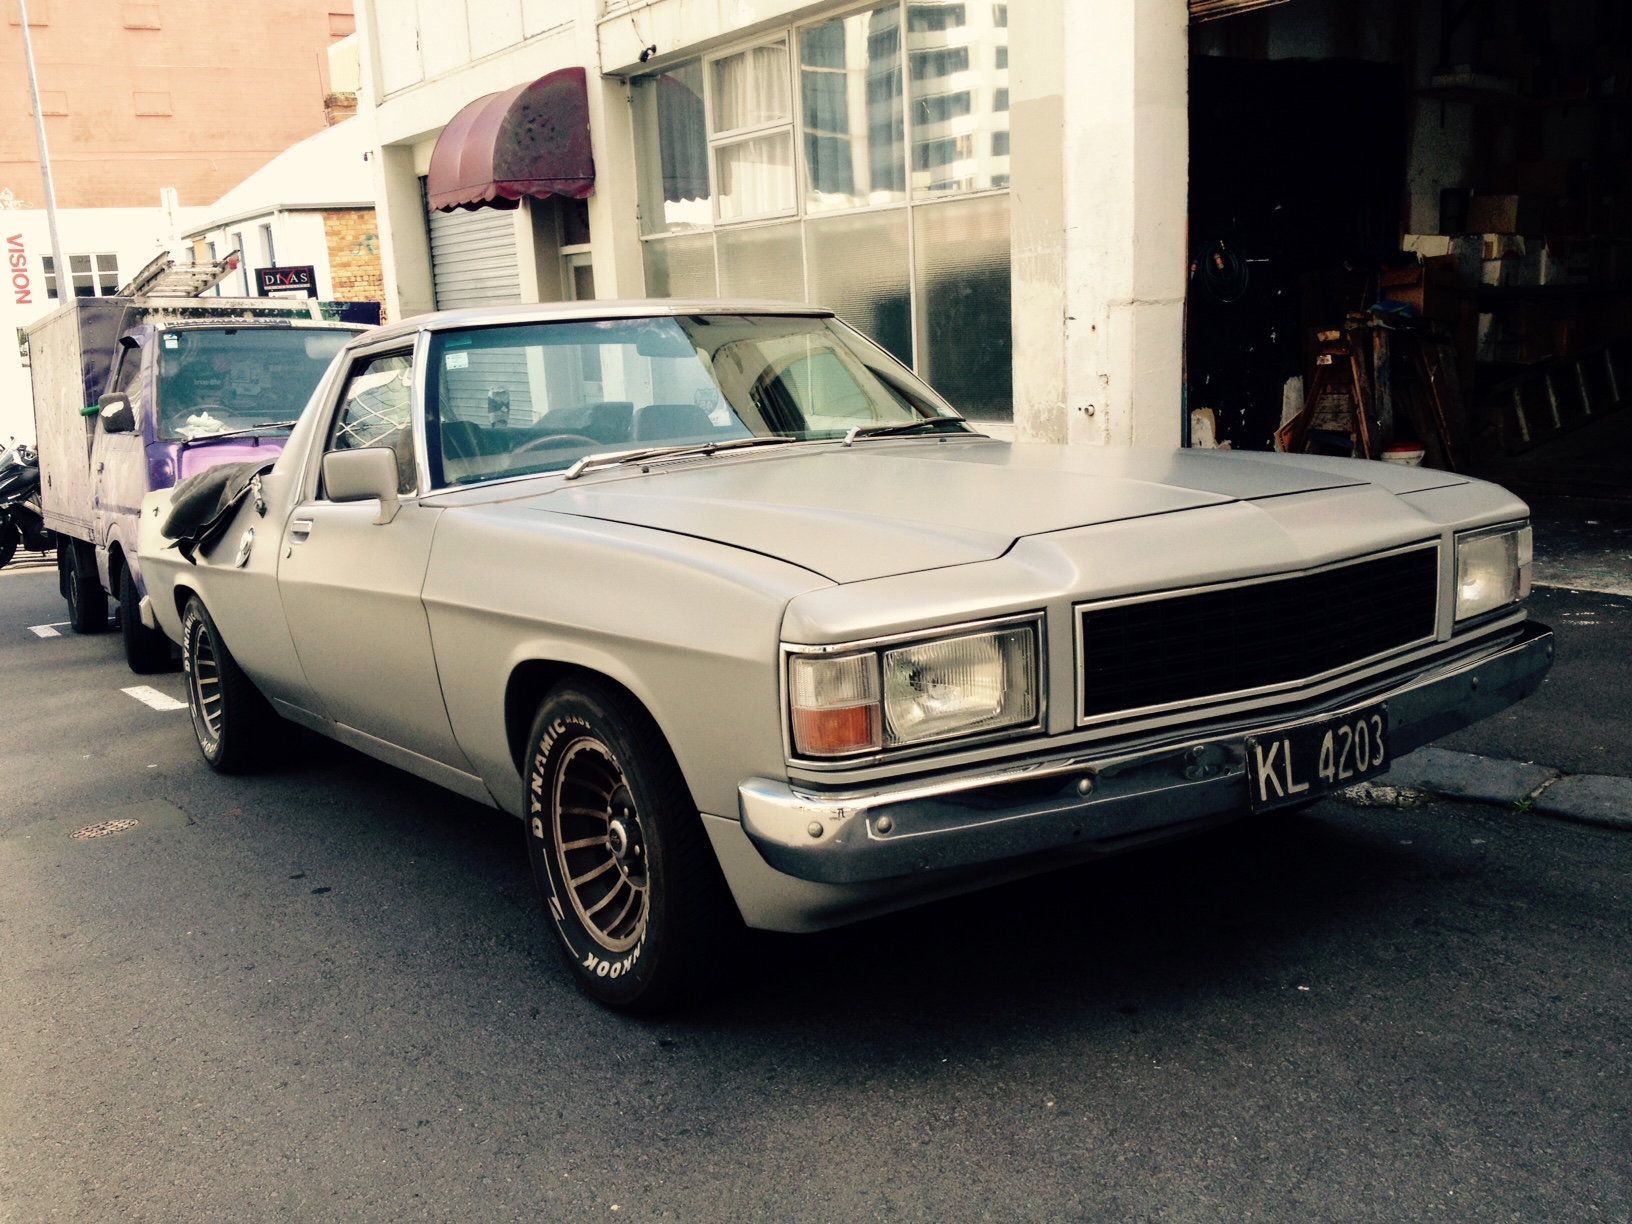 Bill's mid life crisis, the mighty Holden